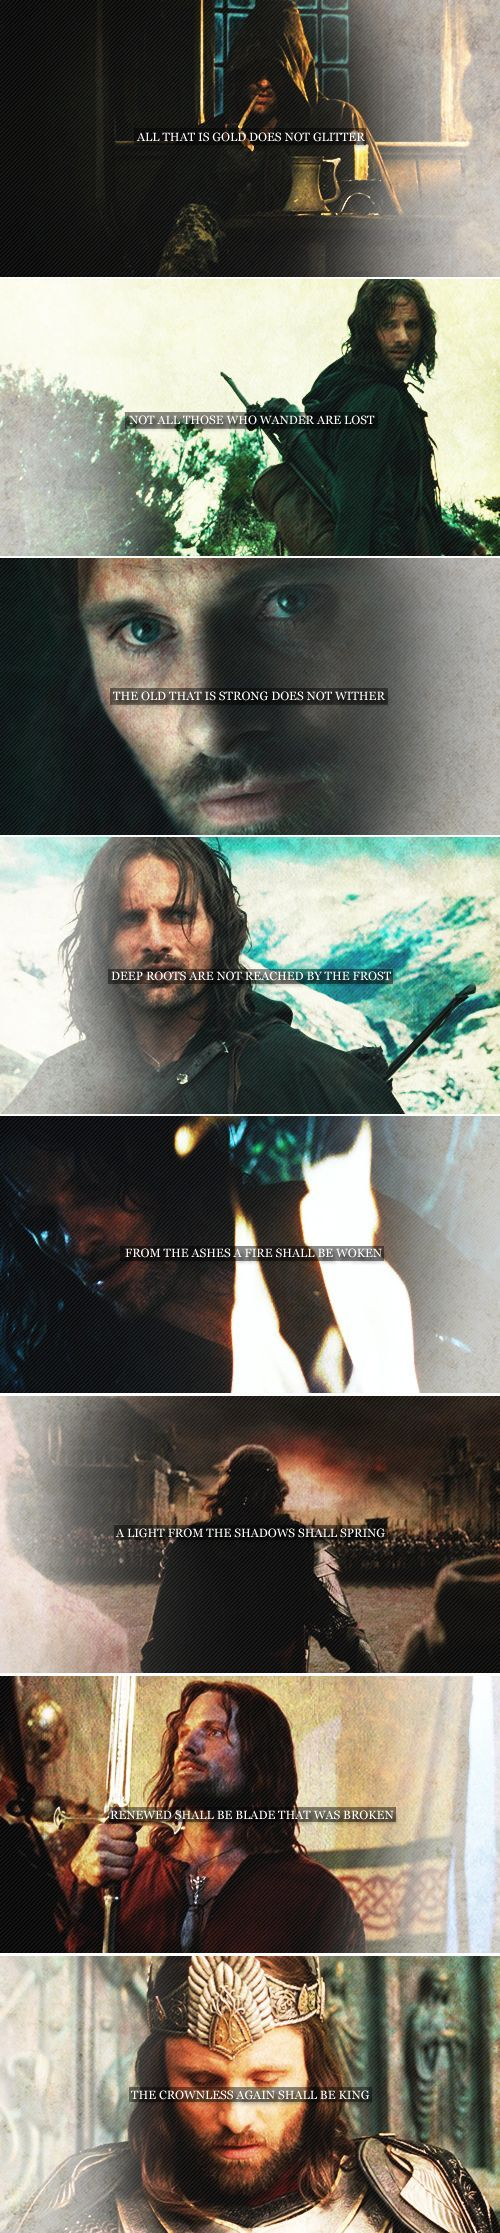 Aragorn | The Lord of the Rings                                                                                                                                                                                 More